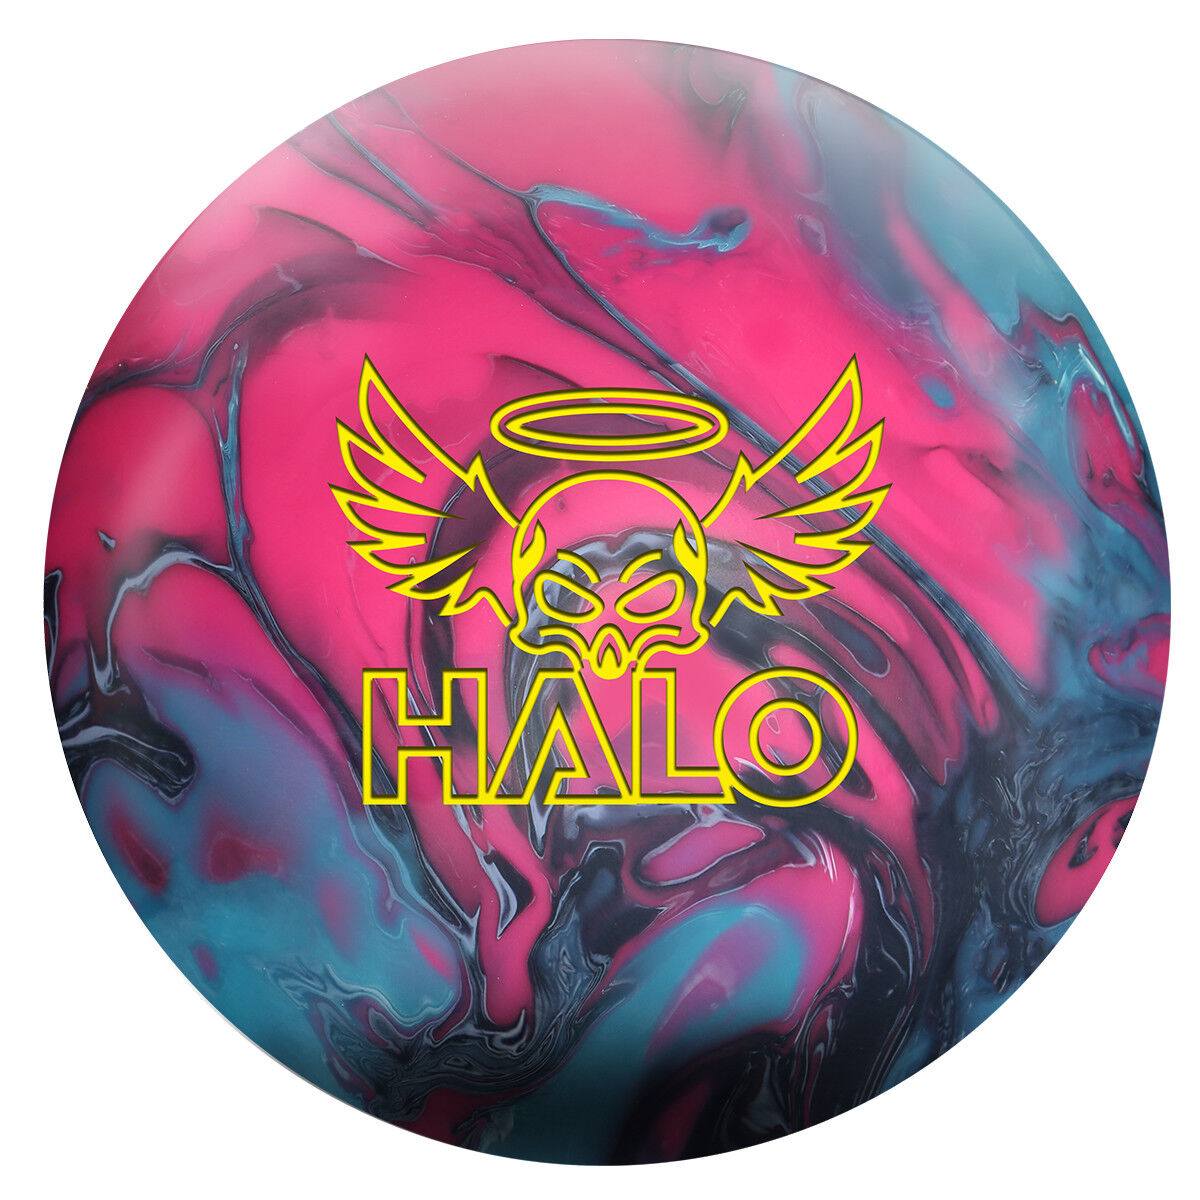 12lb redo Grip Halo Bowling Ball